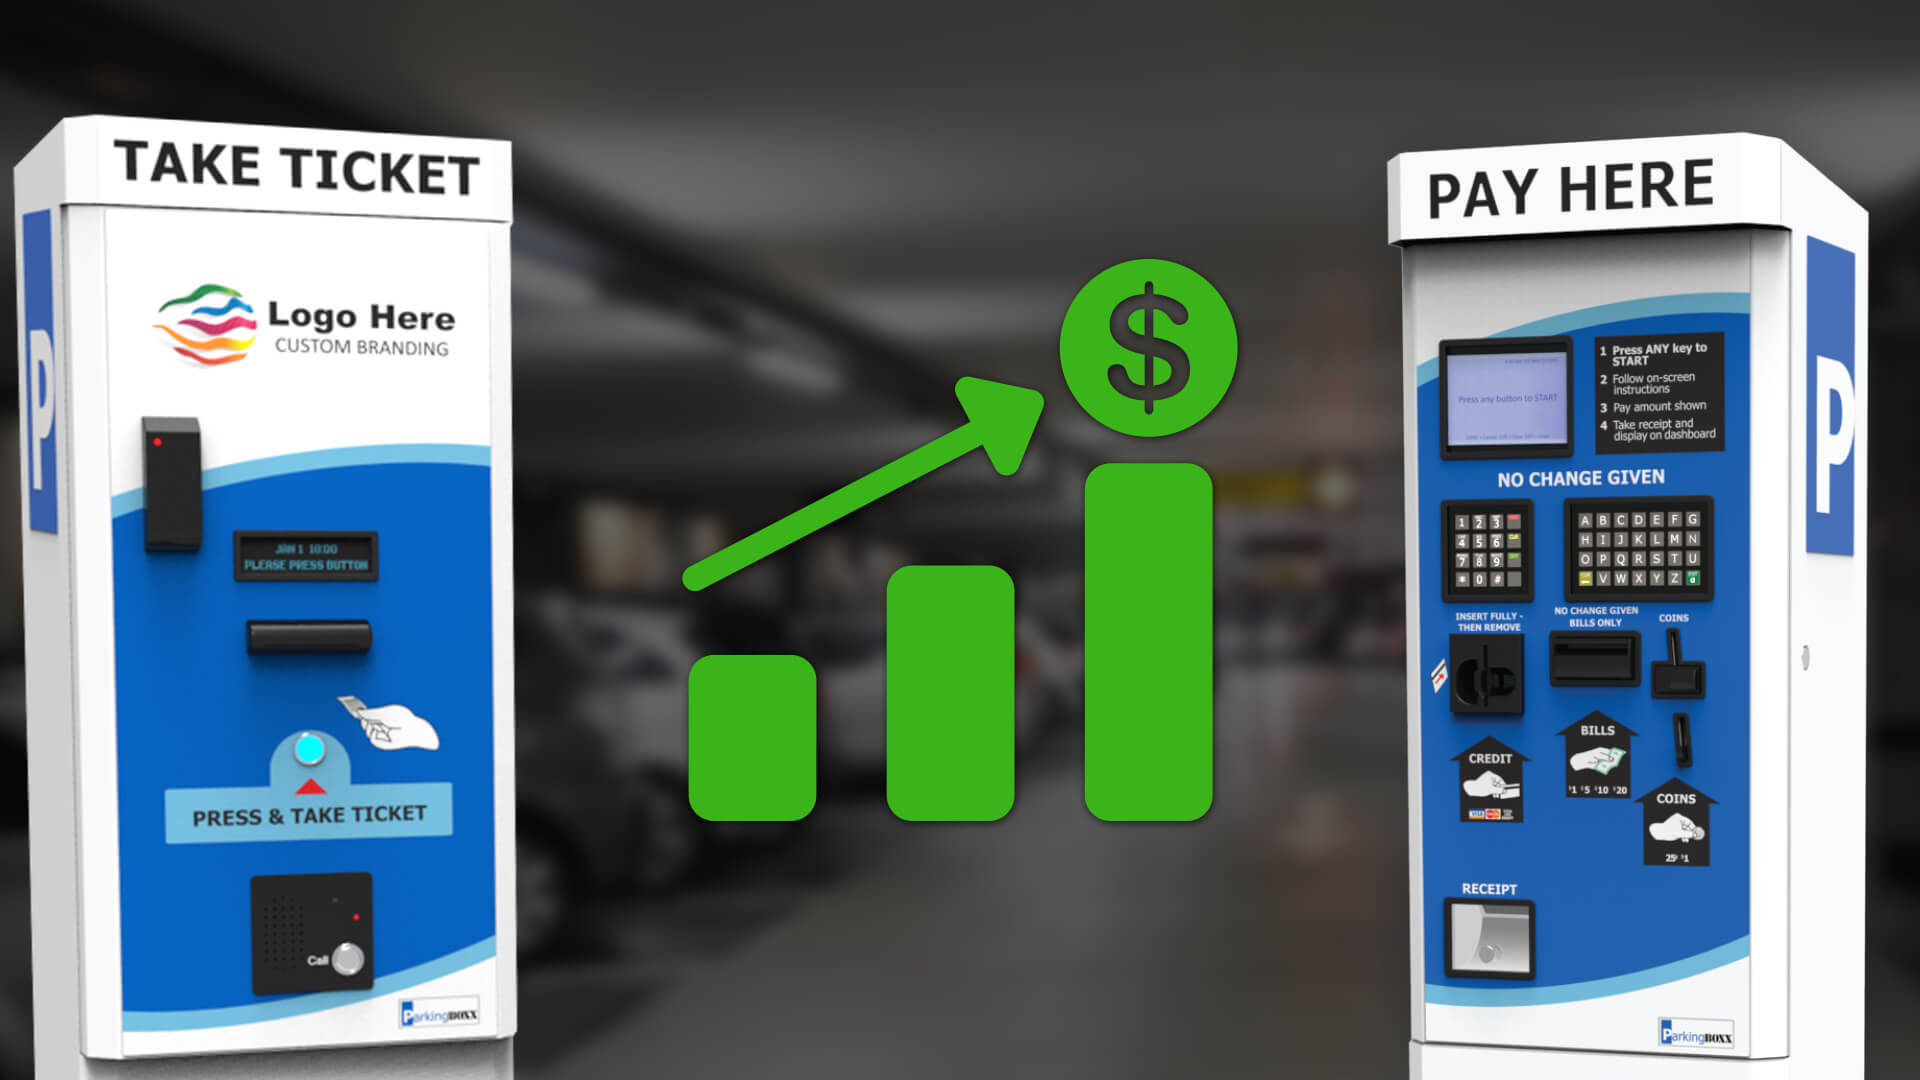 comparison of gated and metered parking system revenue